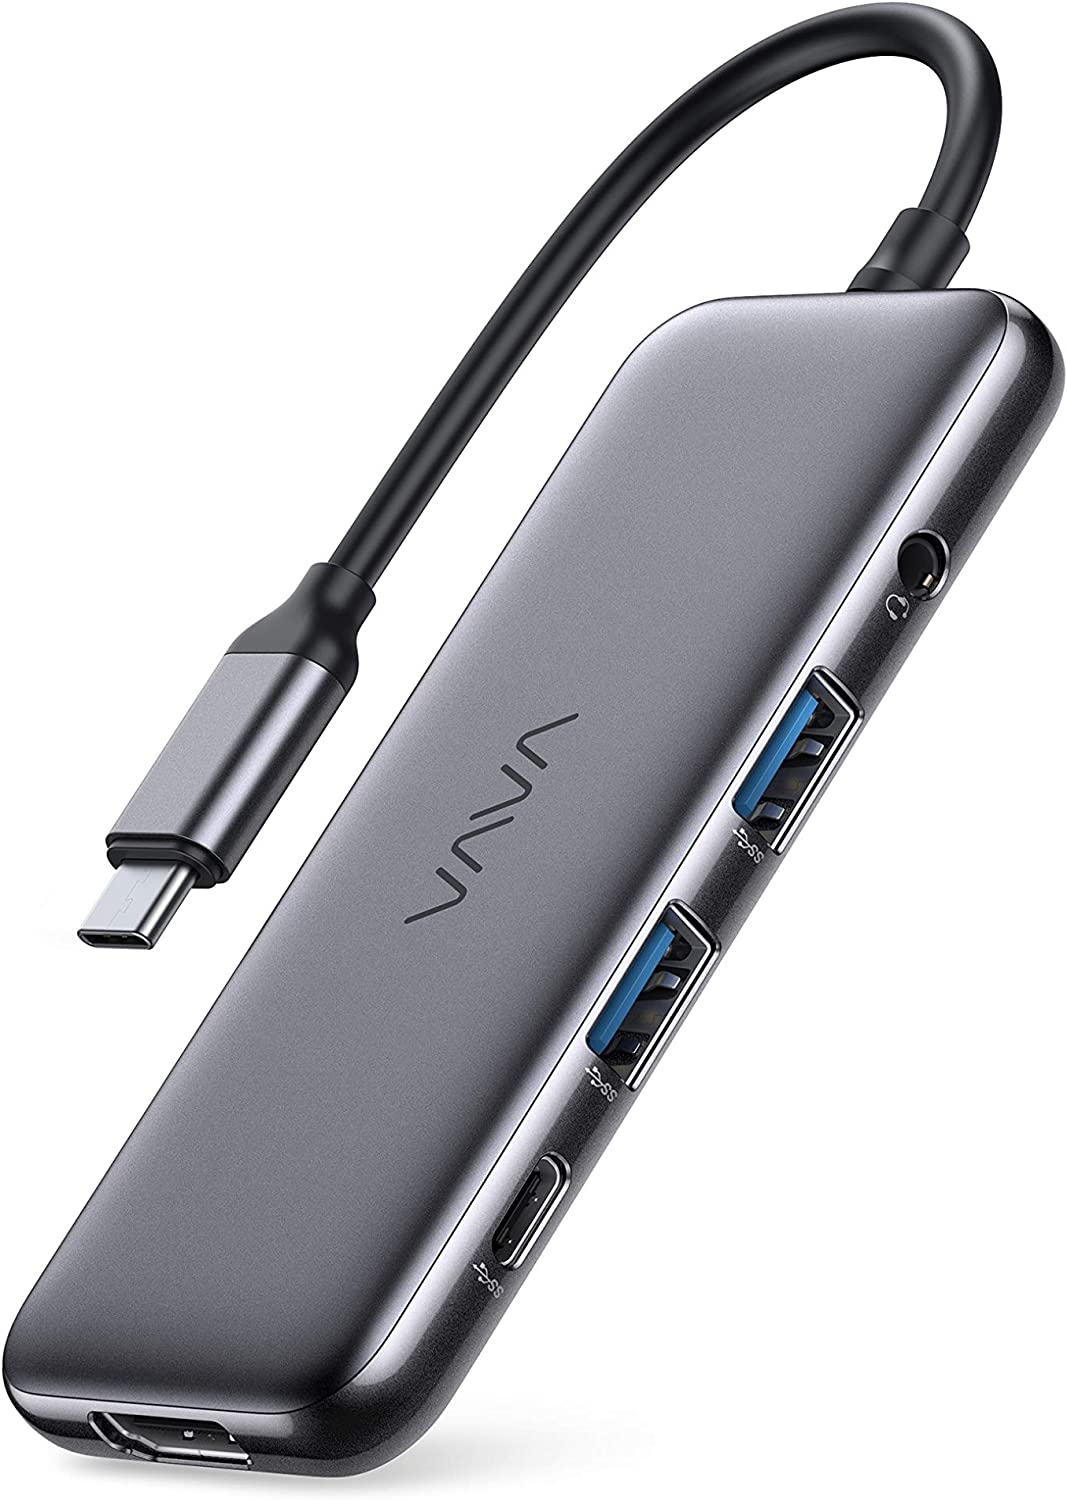 VAVA USB-C Hub, 8-in-1 USB-C Adapter, with 4K 60Hz HDMI, USB-C and USB-A 5Gbps Data Ports, 100W Power Delivery, SD/TF Card Slots, Headphone Jack, for MacBook Pro/iPad Pro/Type-C Devices